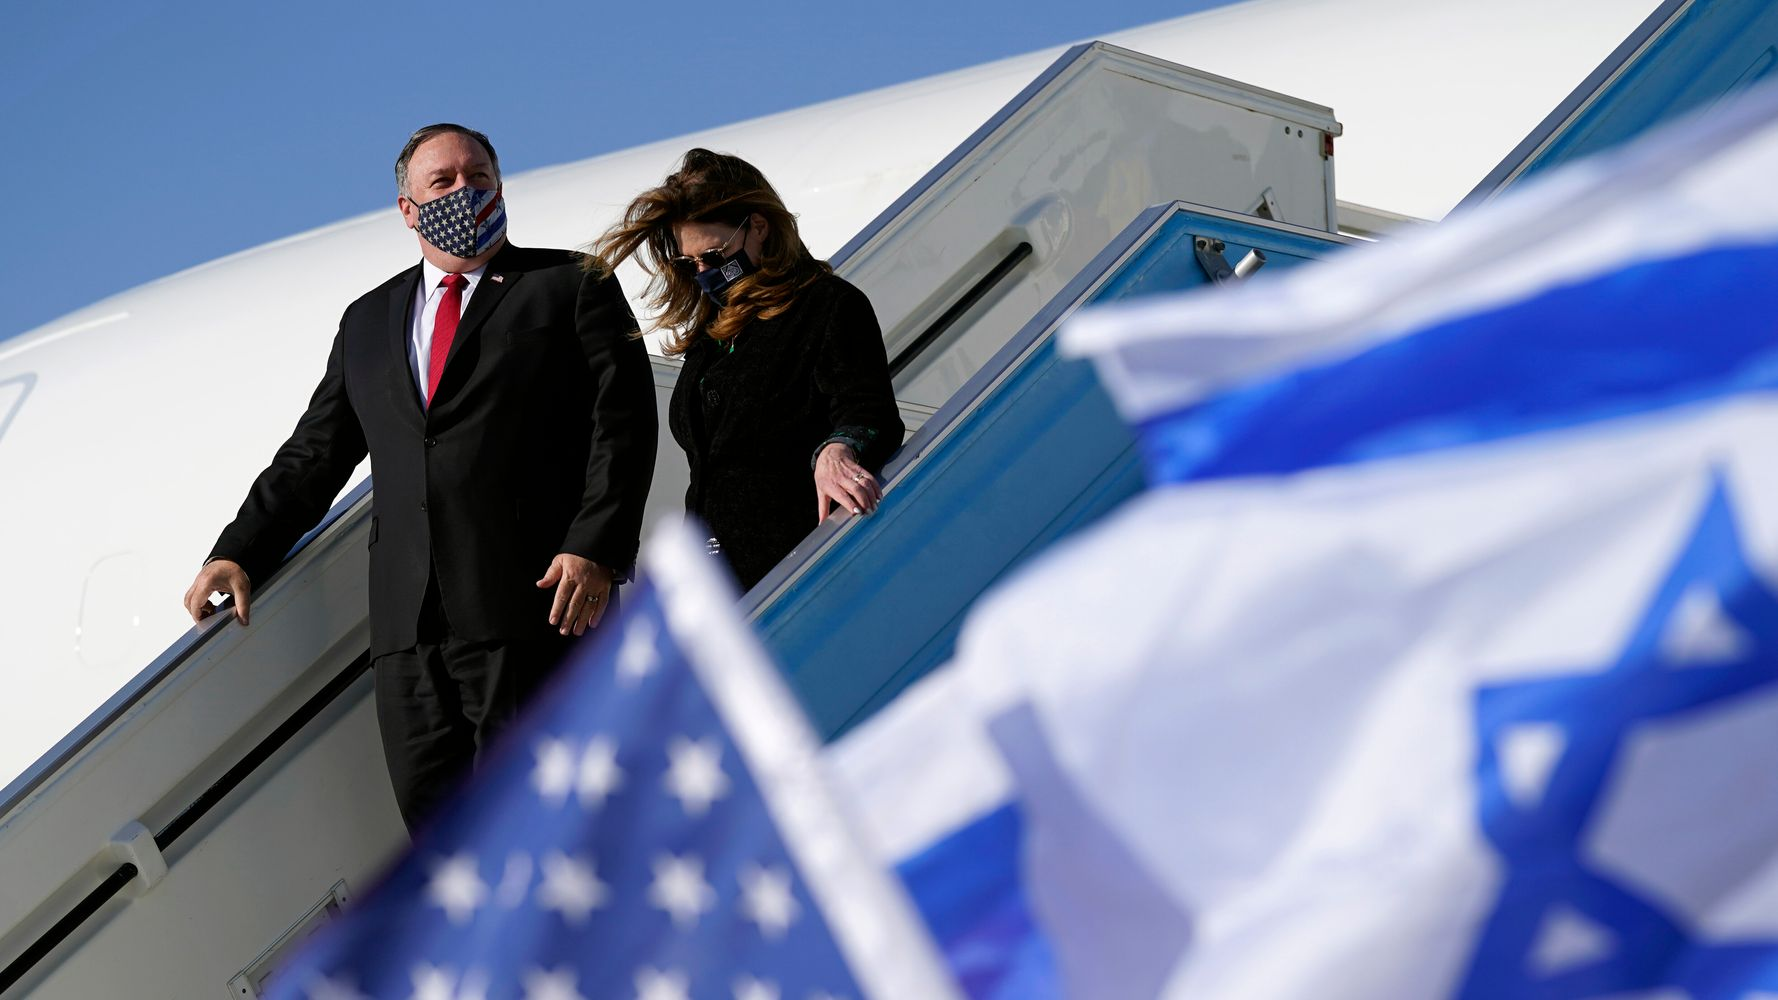 Pompeo Becomes First Top U.S. Diplomat To Visit An Israeli Settlement